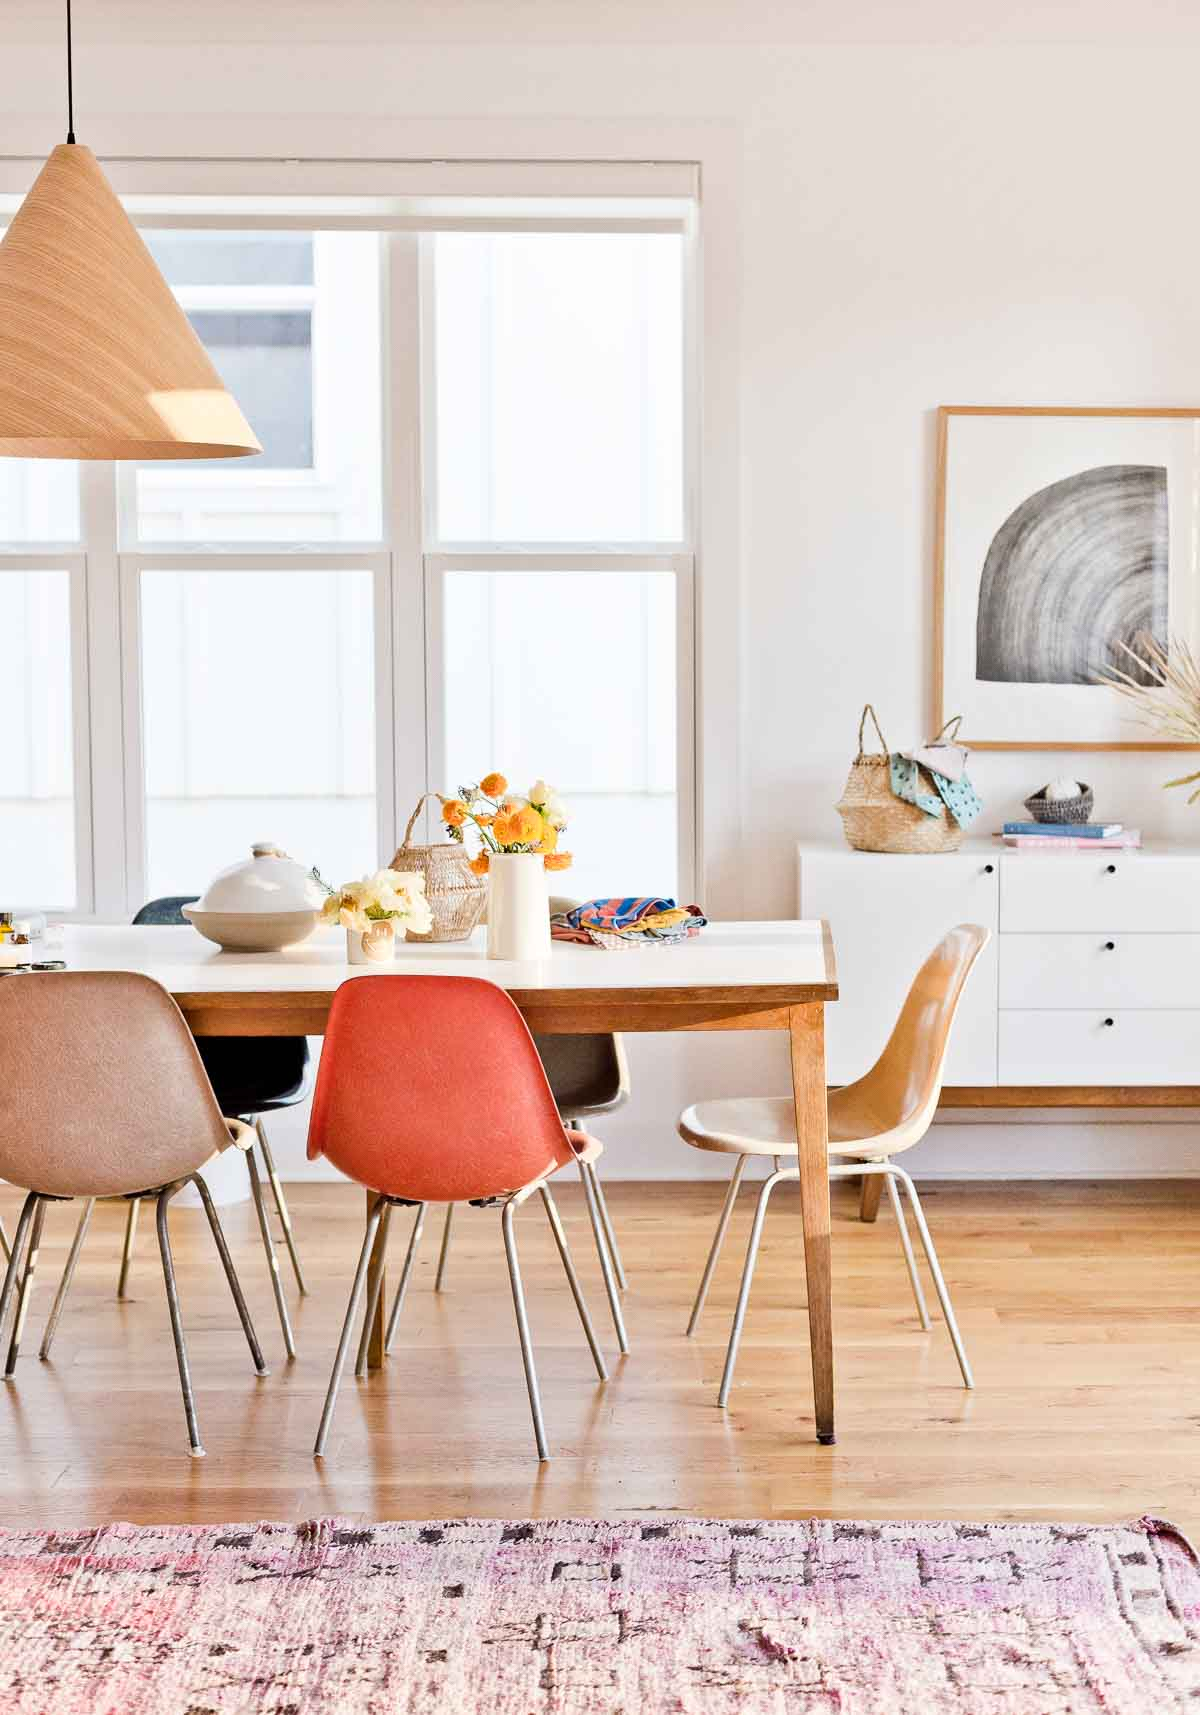 A California born DIY designer makes a home in Atlanta, GA inspired by her west coast roots and laidback style. #modernhome #organicmodern #diningroom #californiastyle #midcenturystyle